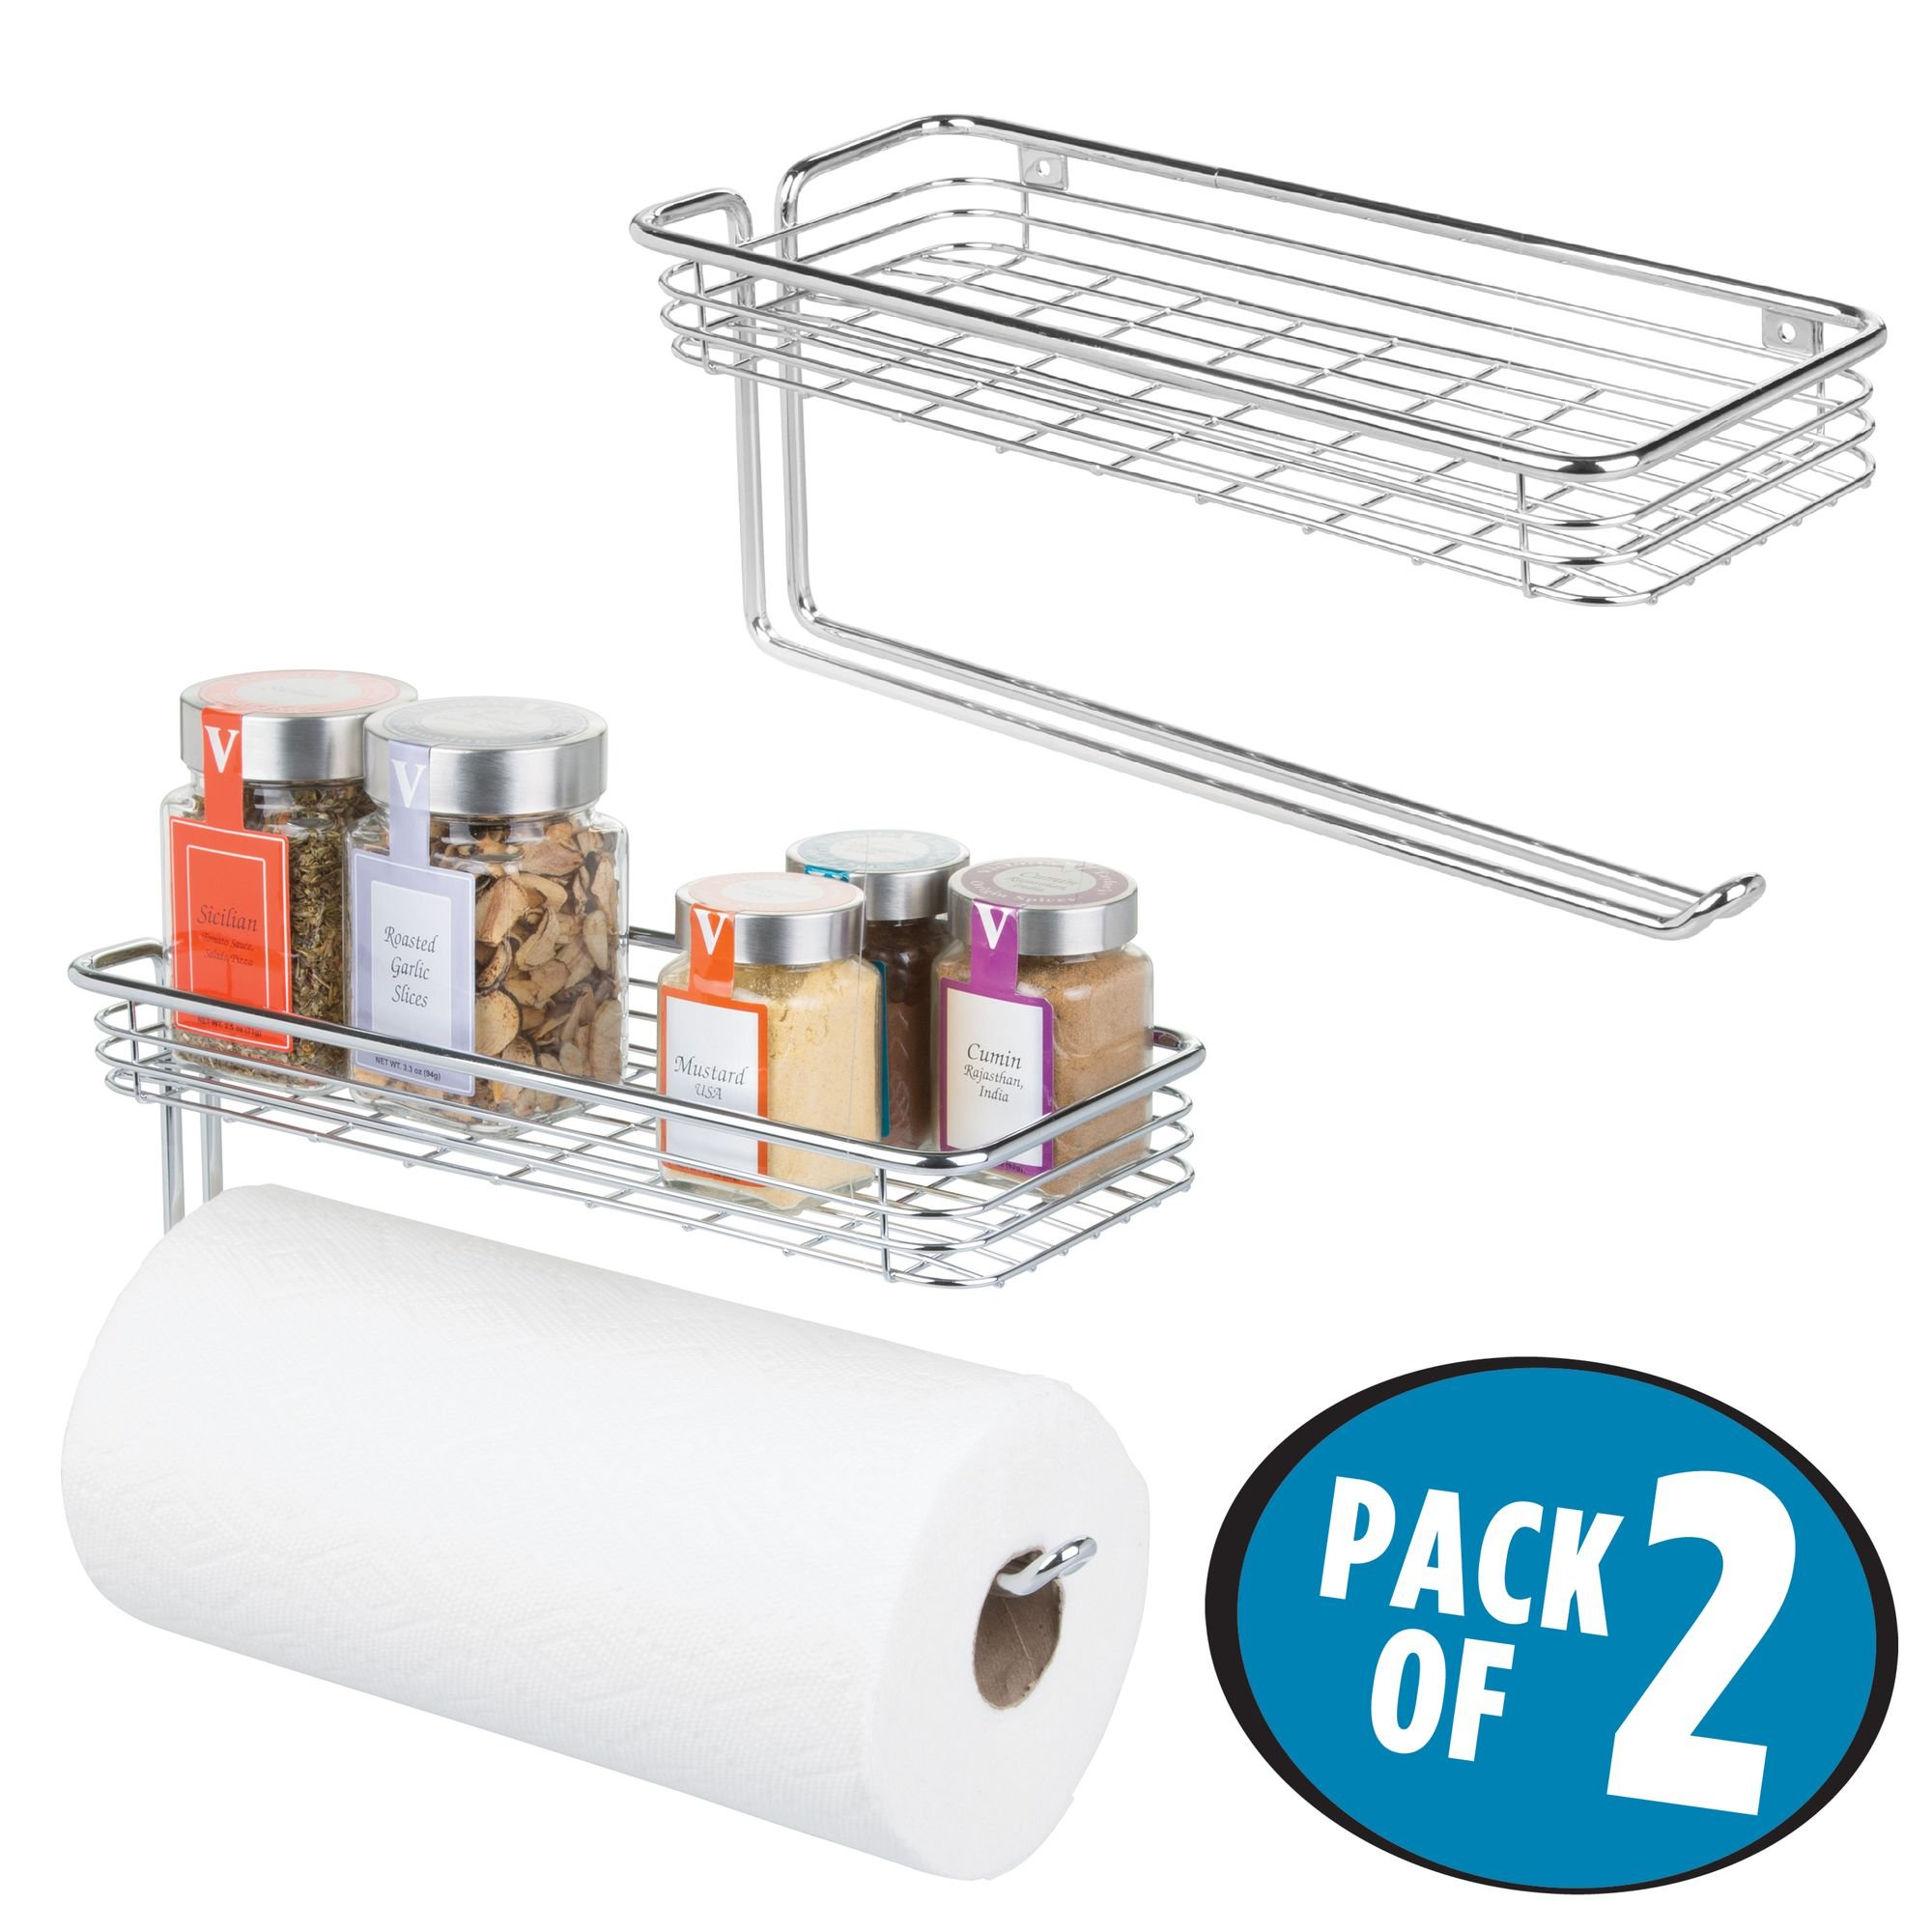 mDesign Paper Towel Holder with Spice Rack and Multi-Purpose Shelf - Wall Mount Storage Organizer for Kitchen, Pantry, Laundry, Garage - Durable Steel Wire Design, Pack of 2, Chrome